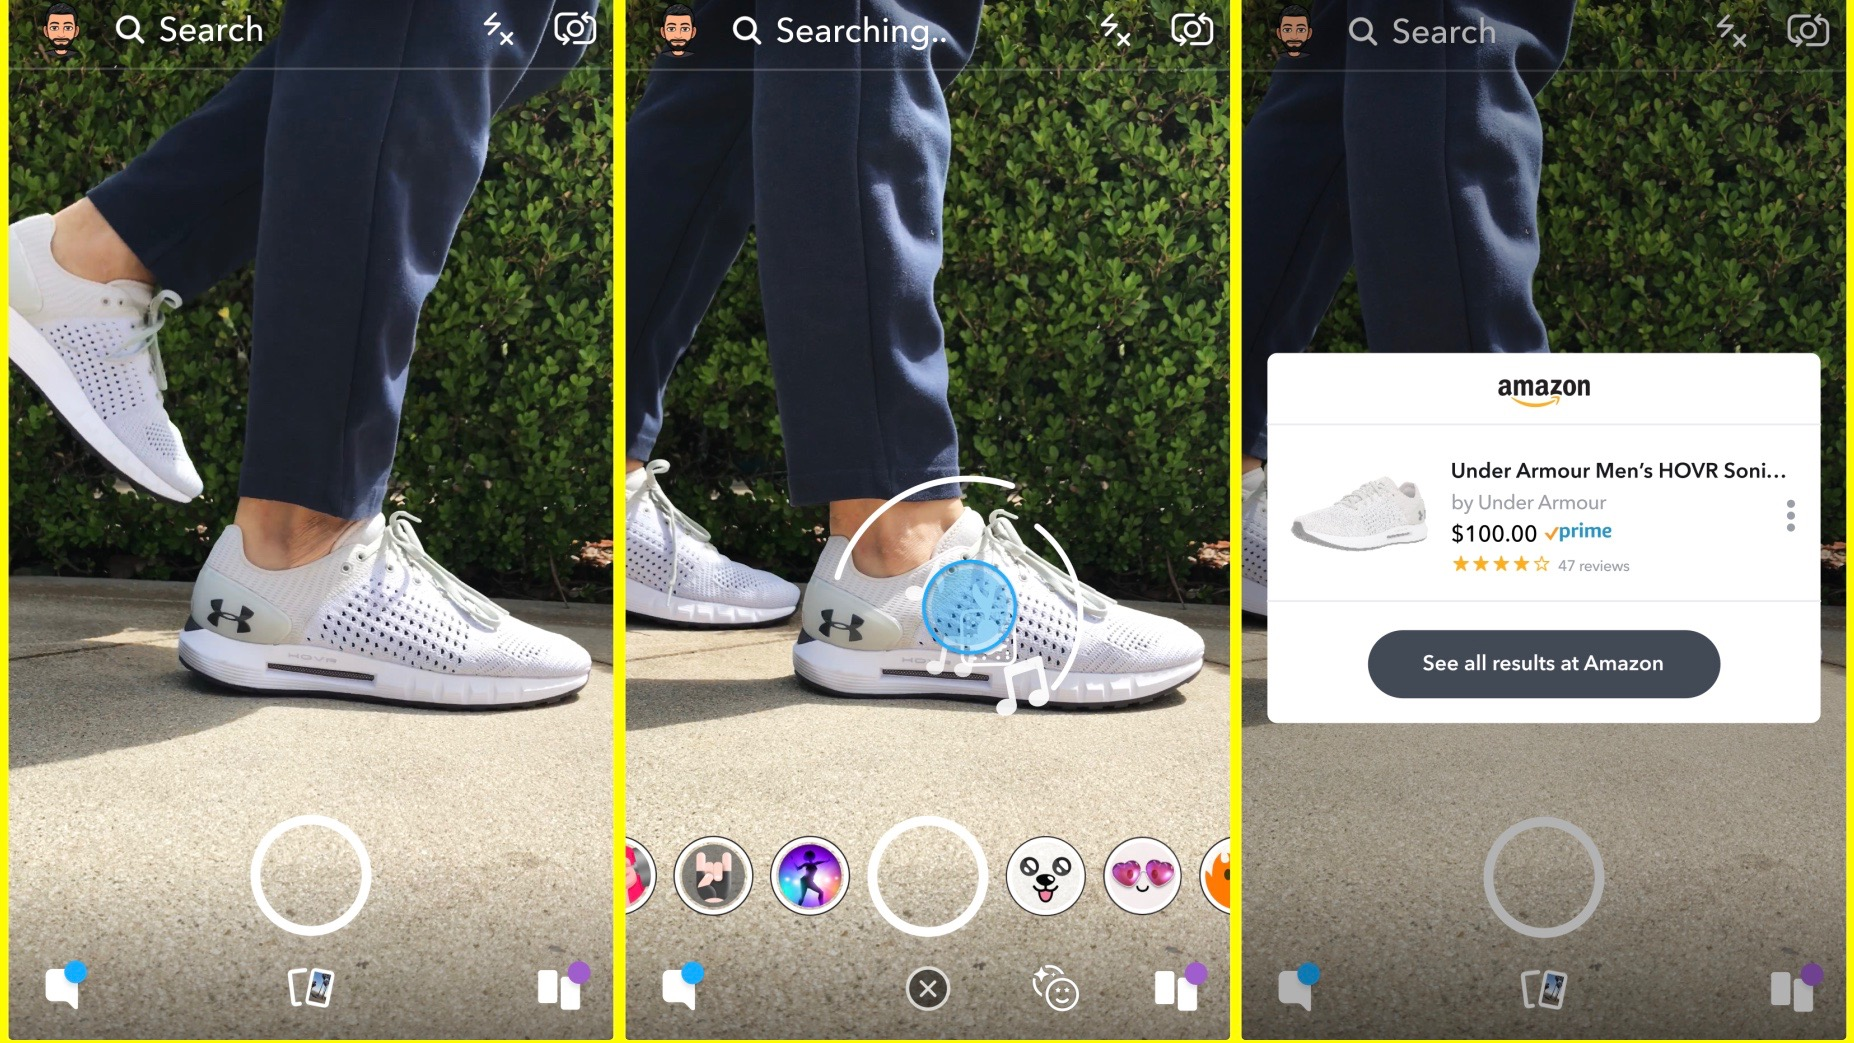 snapchat partners with amazon for new visual search shopping feature